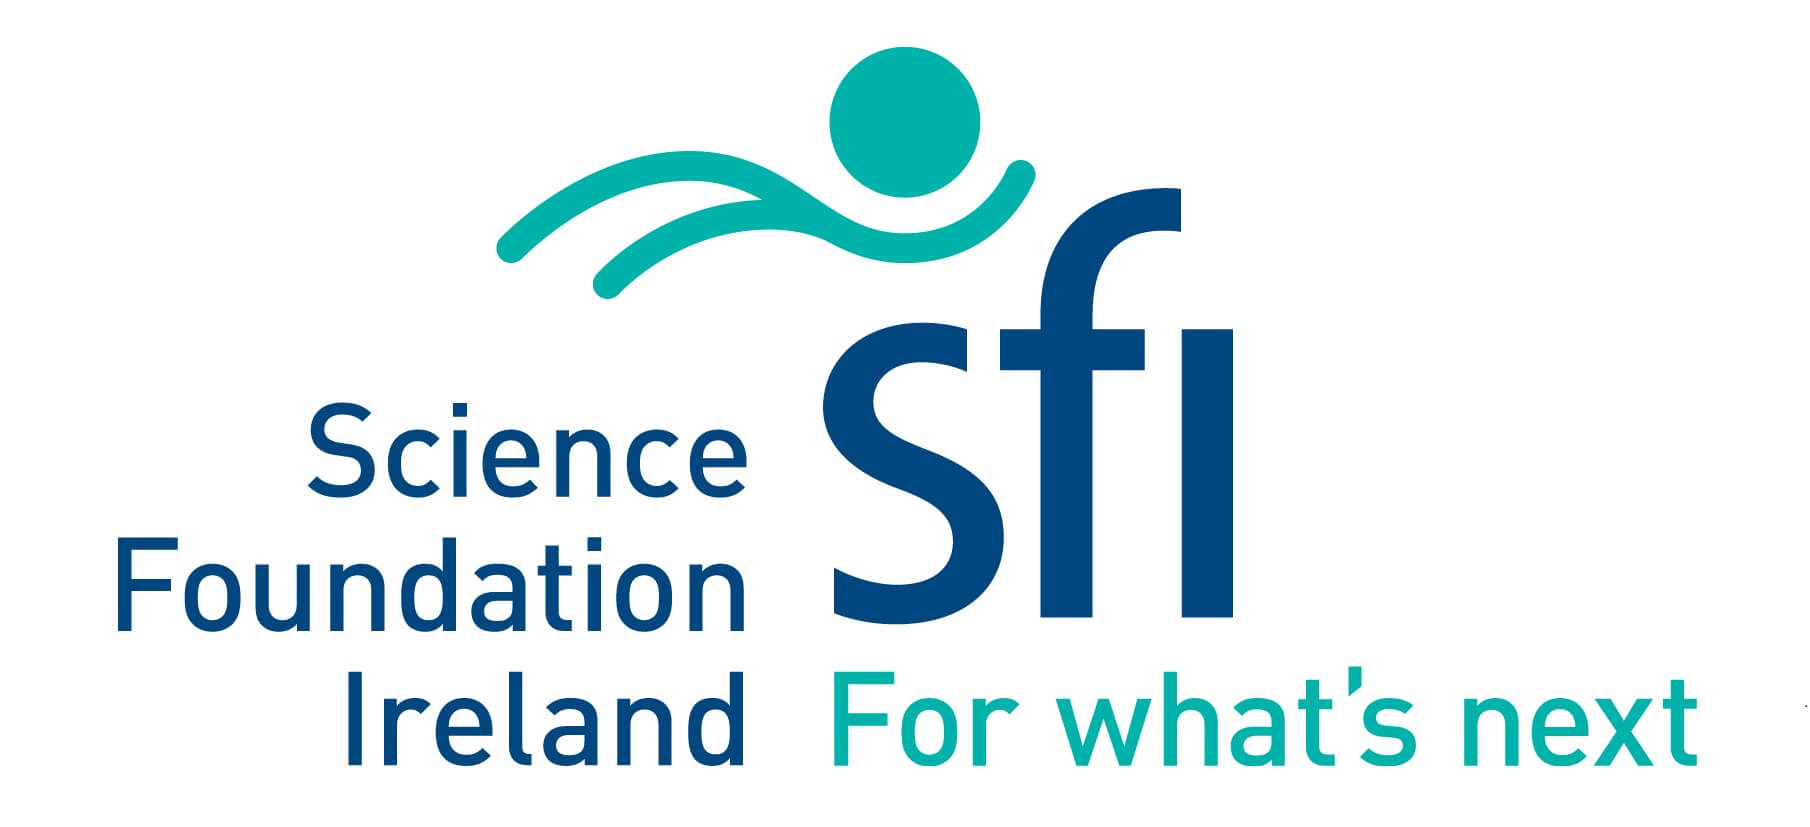 SFI-Discover-logo.png Niamh Shaw, elon musk, nasa, spacex, engineering, richard branson, communication, stem, astronaut, niamh, scientist, artist, perform, esa, polymath, broadcast, blue origin, virgin galactic, niamh shaw, space exploration, norah patten, zero g, irish astronaut, science communication, women in stem, roscosmos, female astronauts, jaxa, baikonur, irish engineering, ireland's first astronaut, multi disciplined, stem advocate, female space explorer, irelands first female astronaut, irelands first person in space, irish female activist, irish female polymath, irish female role model, irish female trailblazer, irish role models, irish space explorer, performer & communicator & space explorer, space advocate, stem communicator